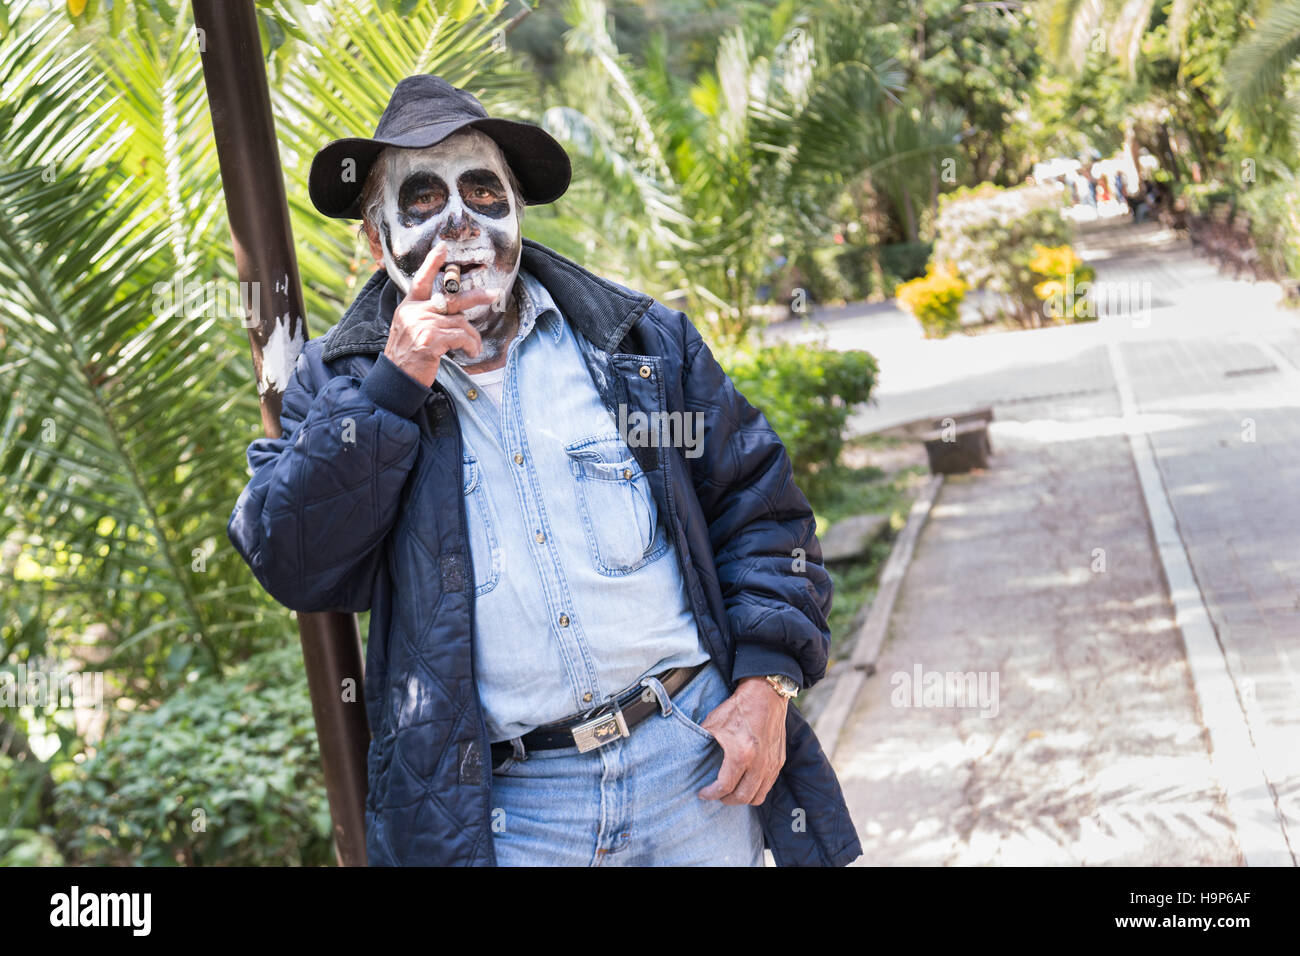 A man dressed as hobo skeleton during the Day of the Dead in the Parque Juarez October 30, 2016 in San Miguel de - Stock Image